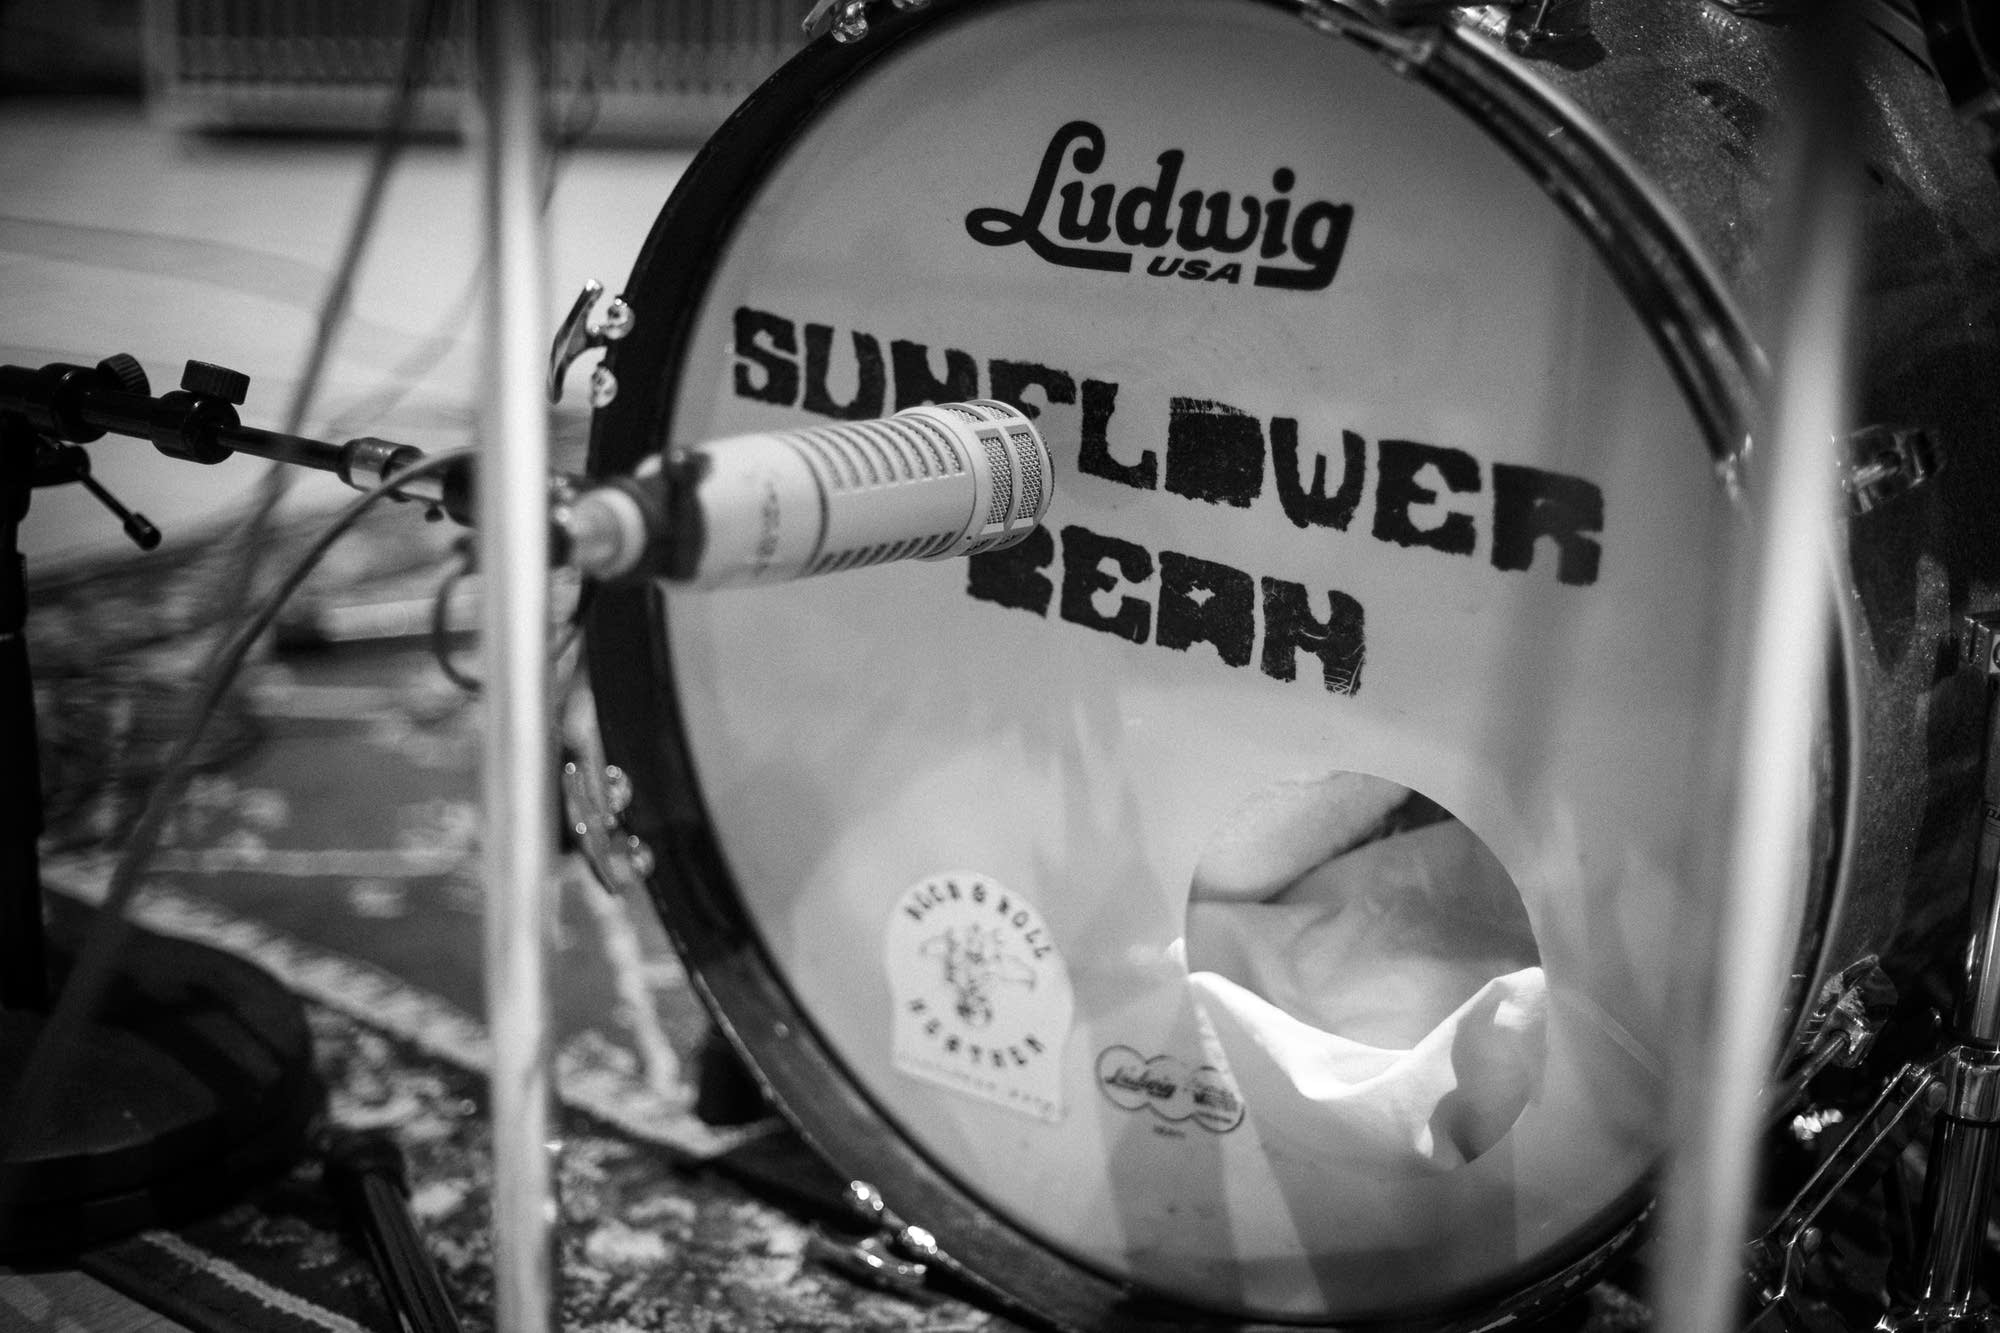 Sunflower Bean's drums at The Current